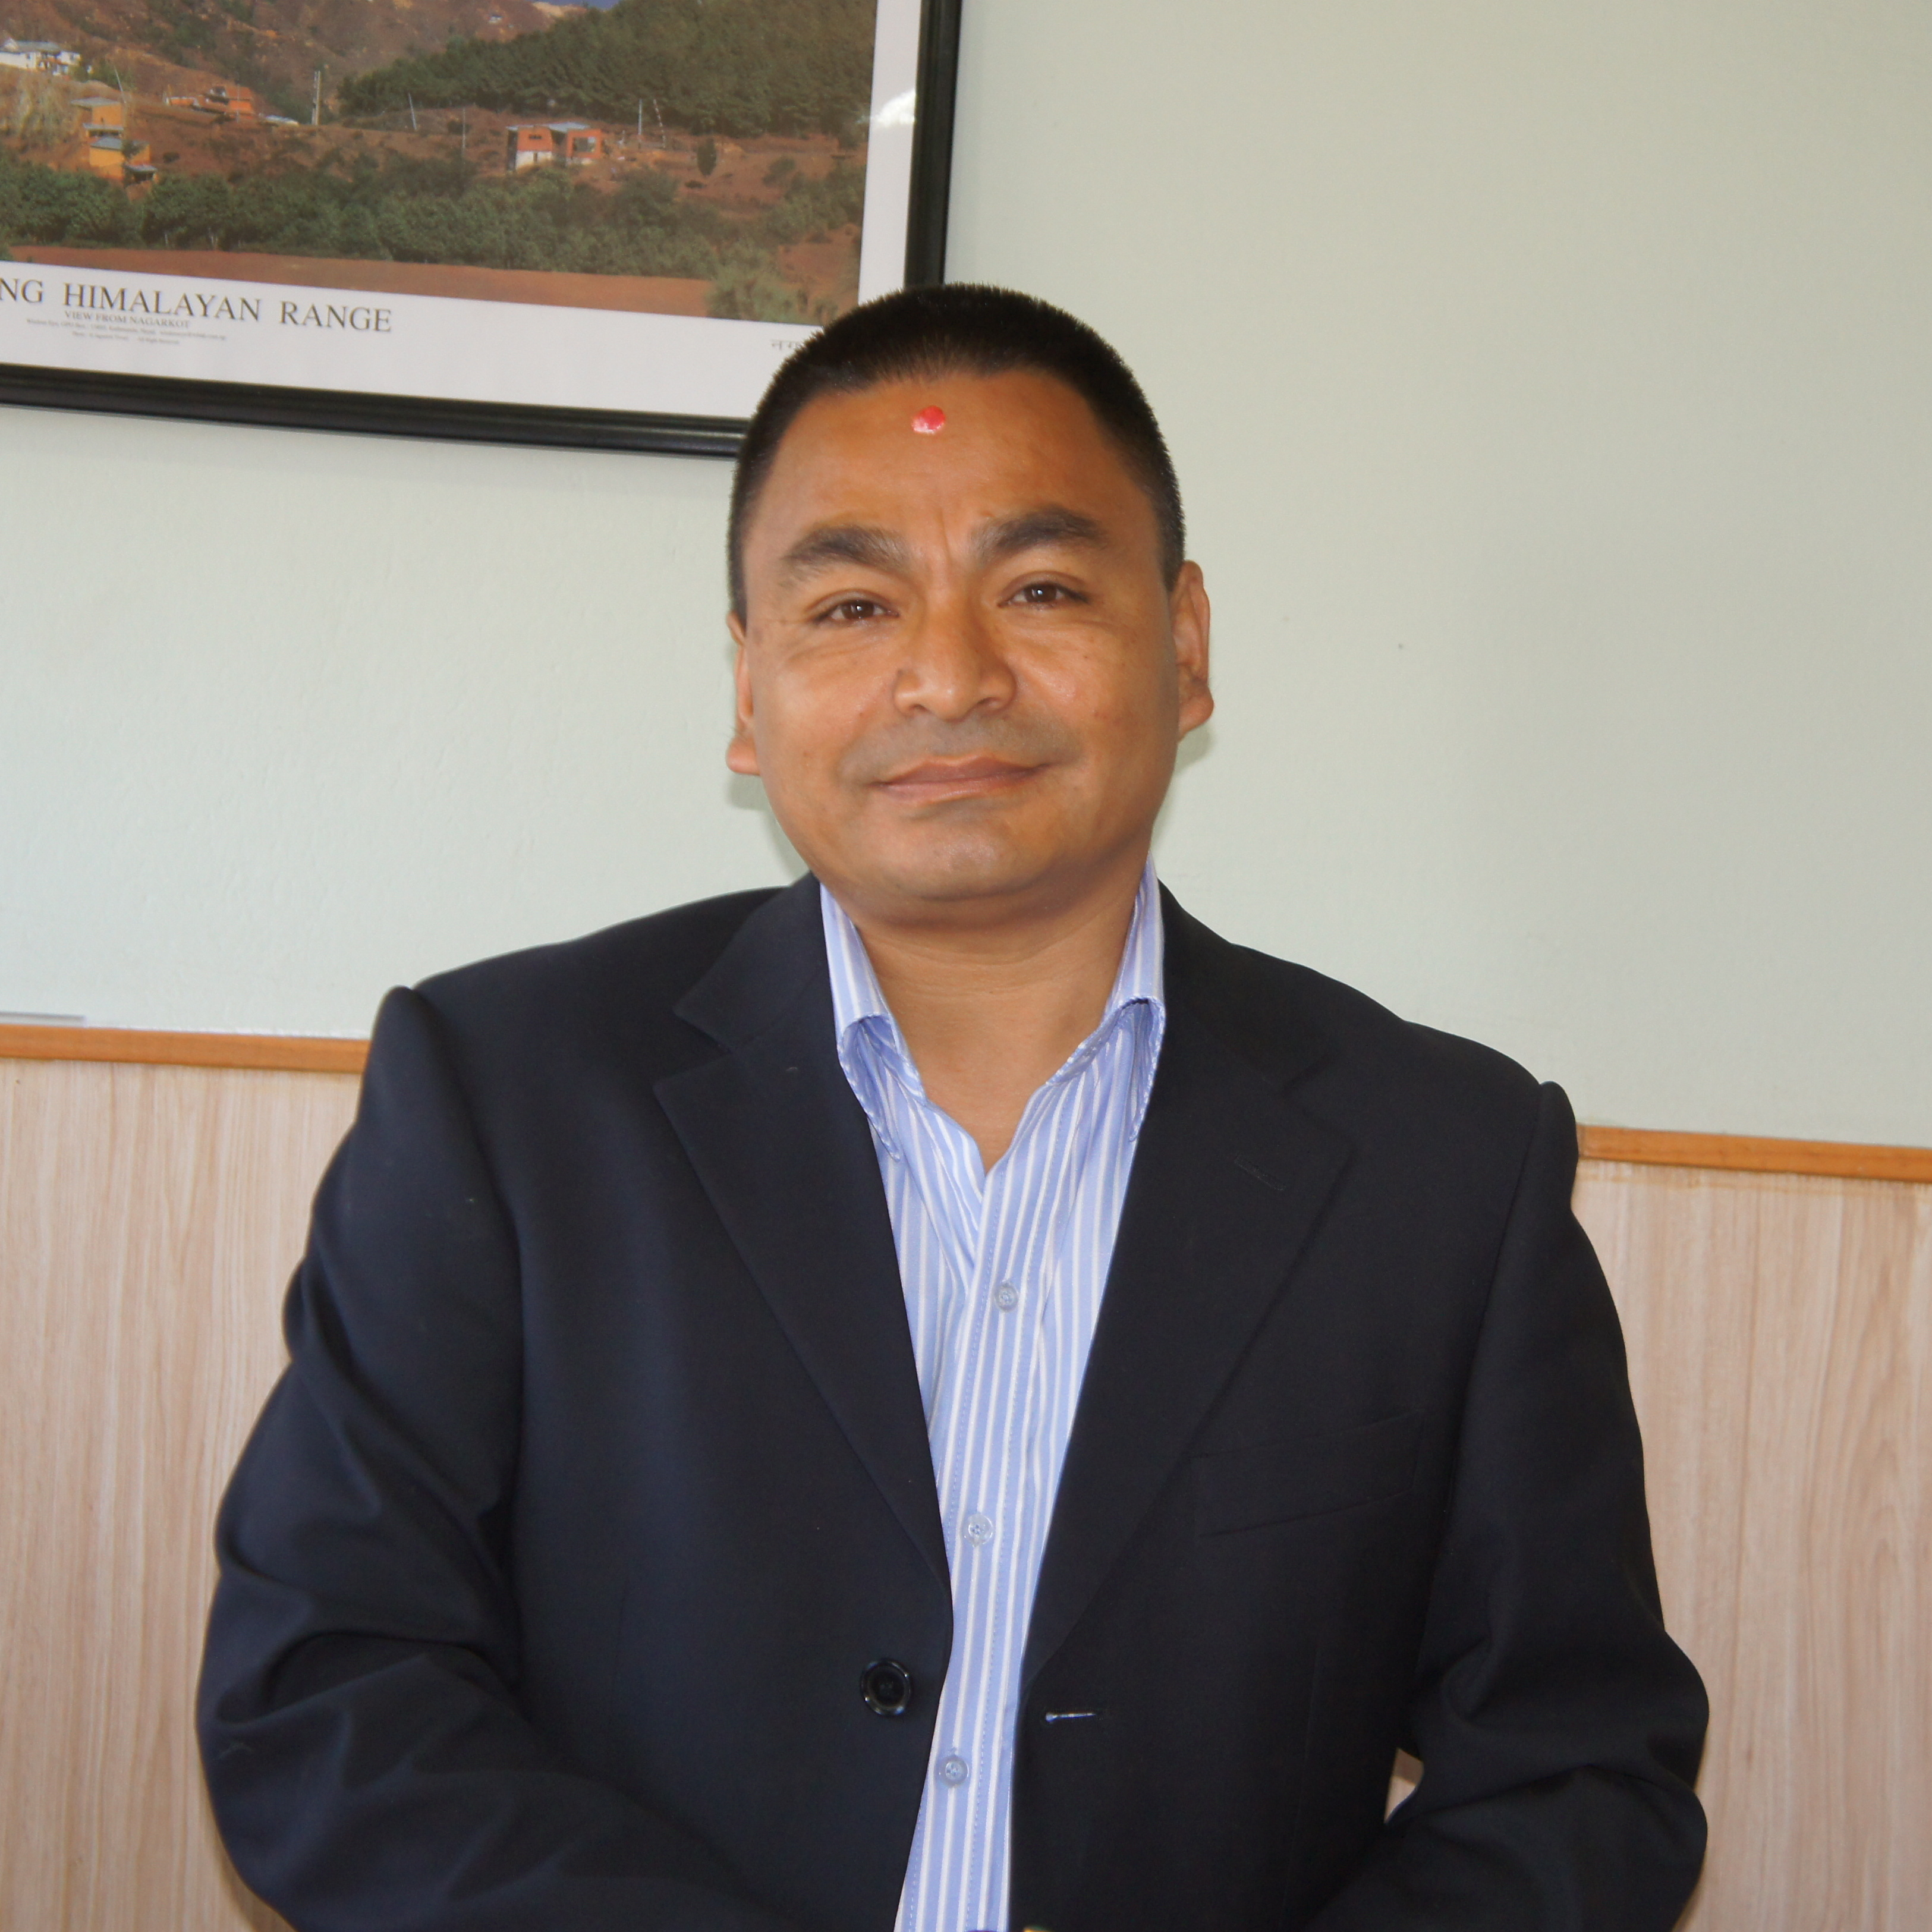 Mohan das shrestha